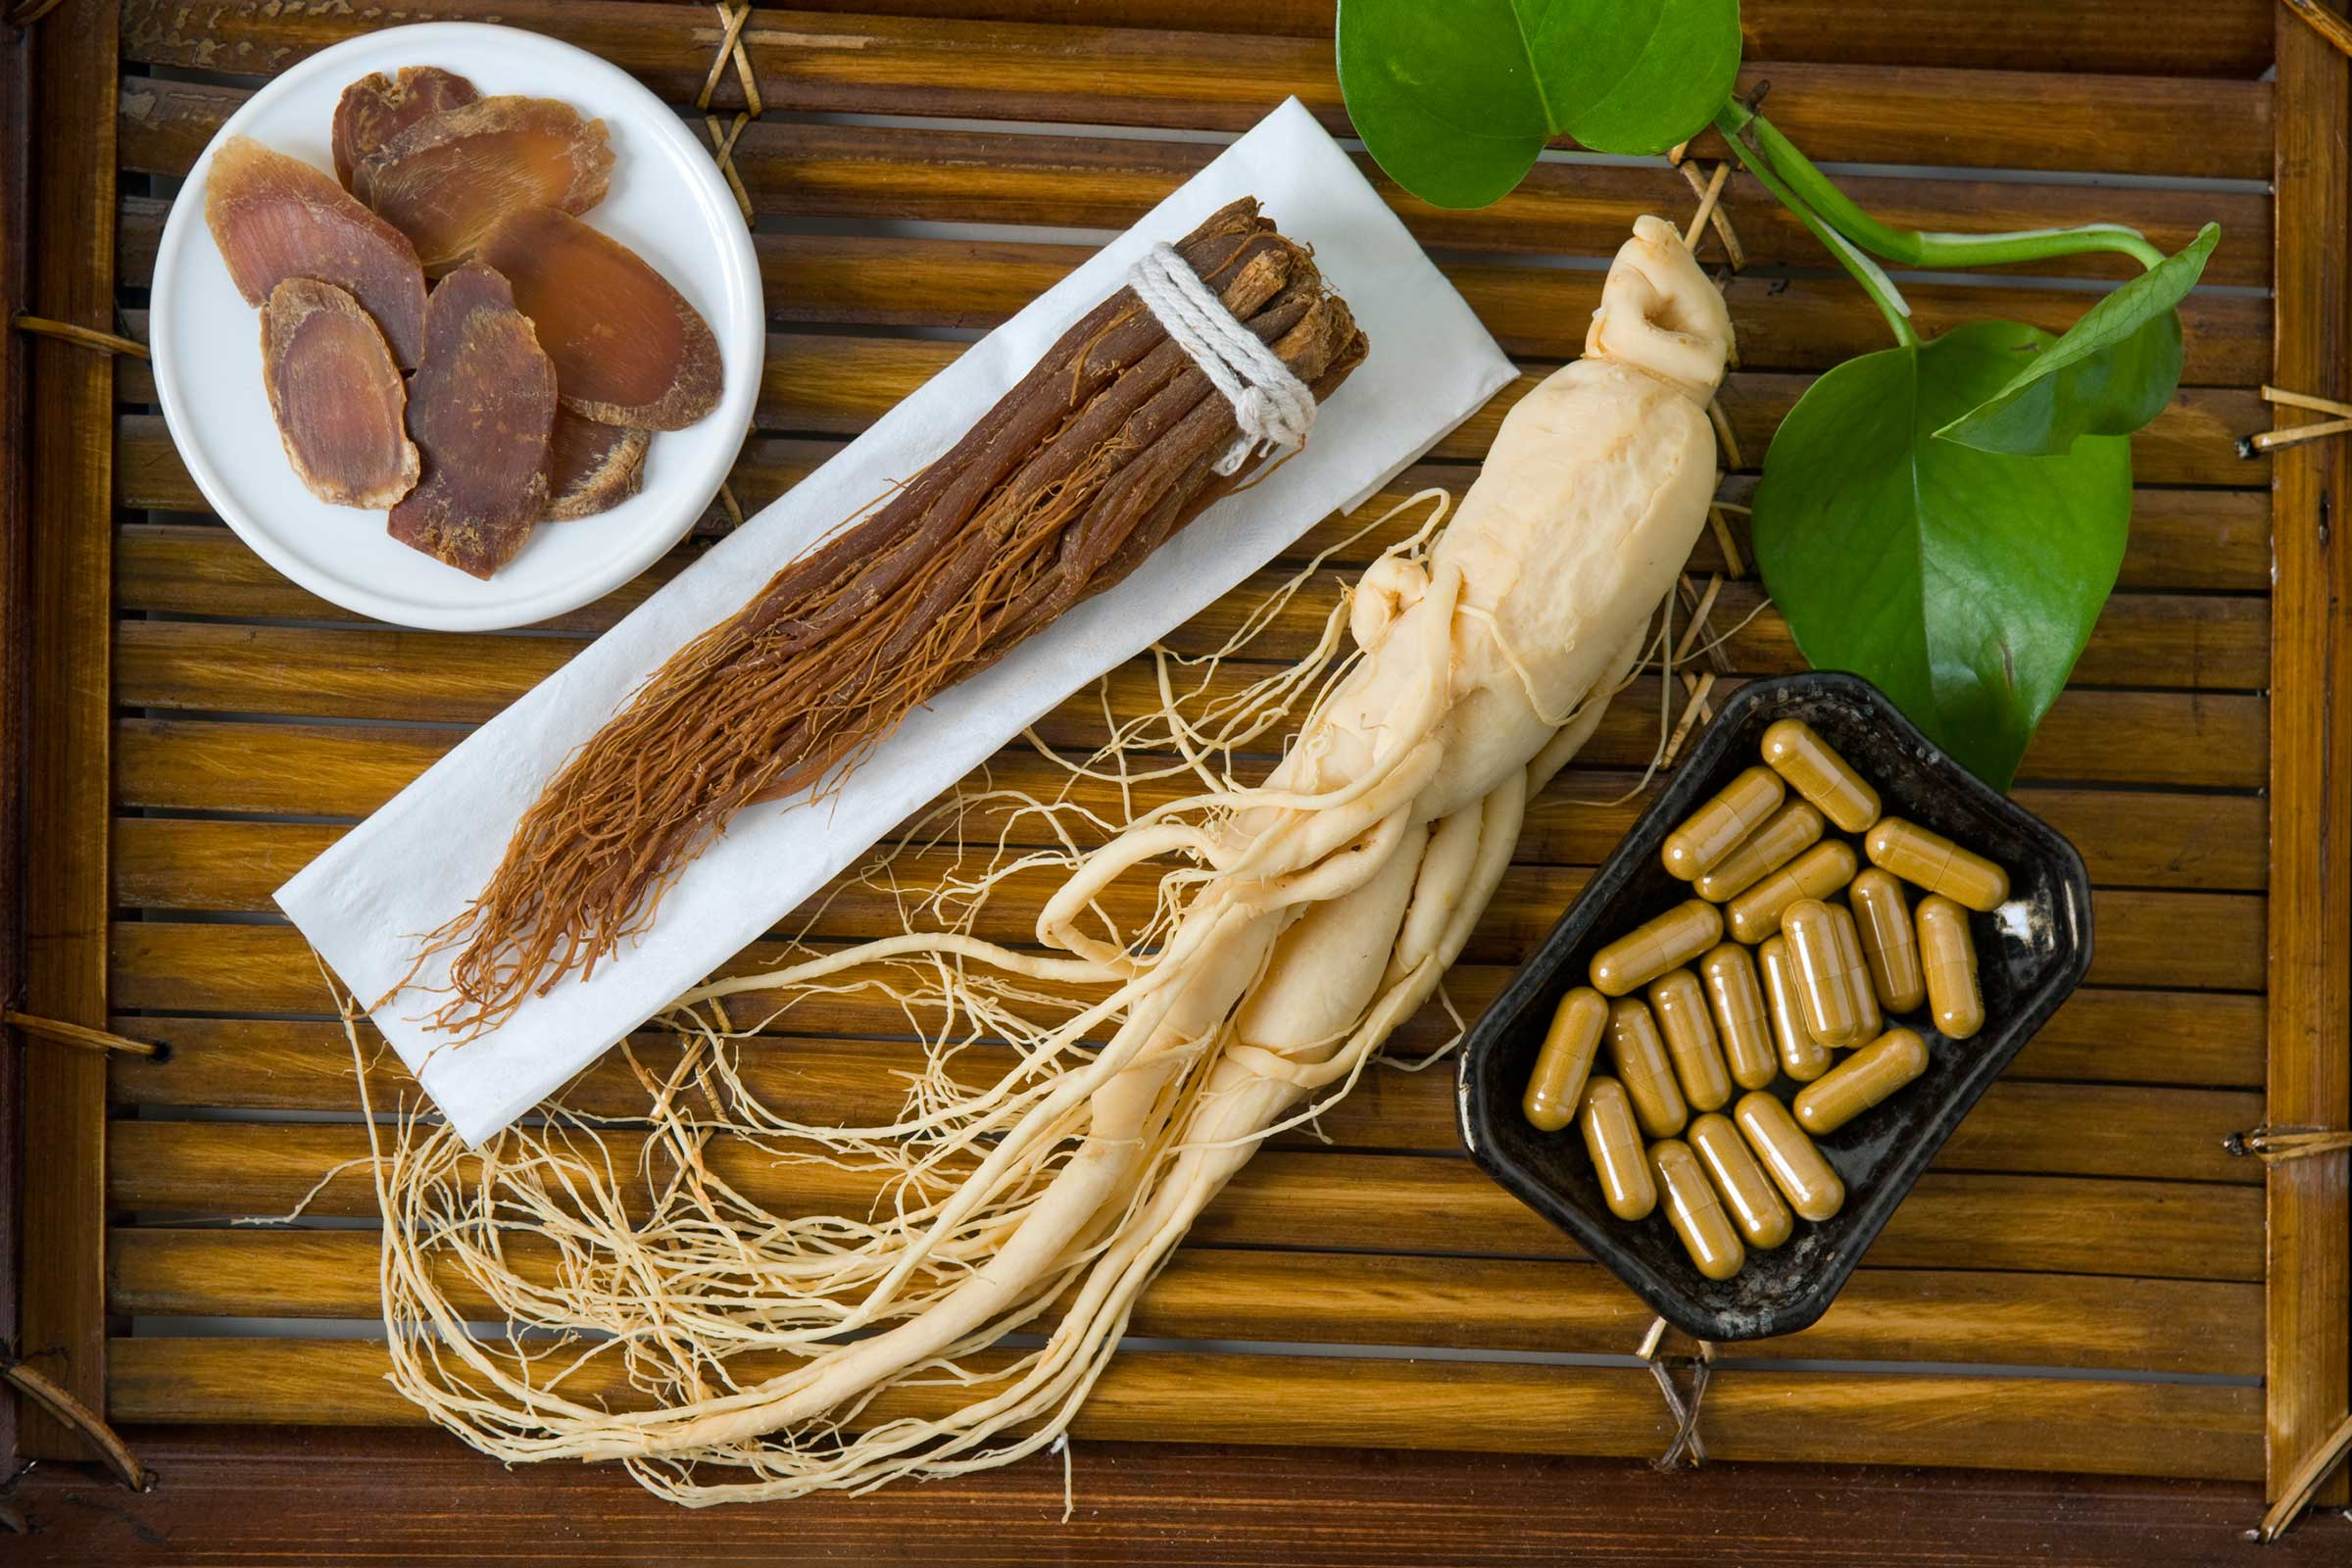 Healthy properties of Ginseng